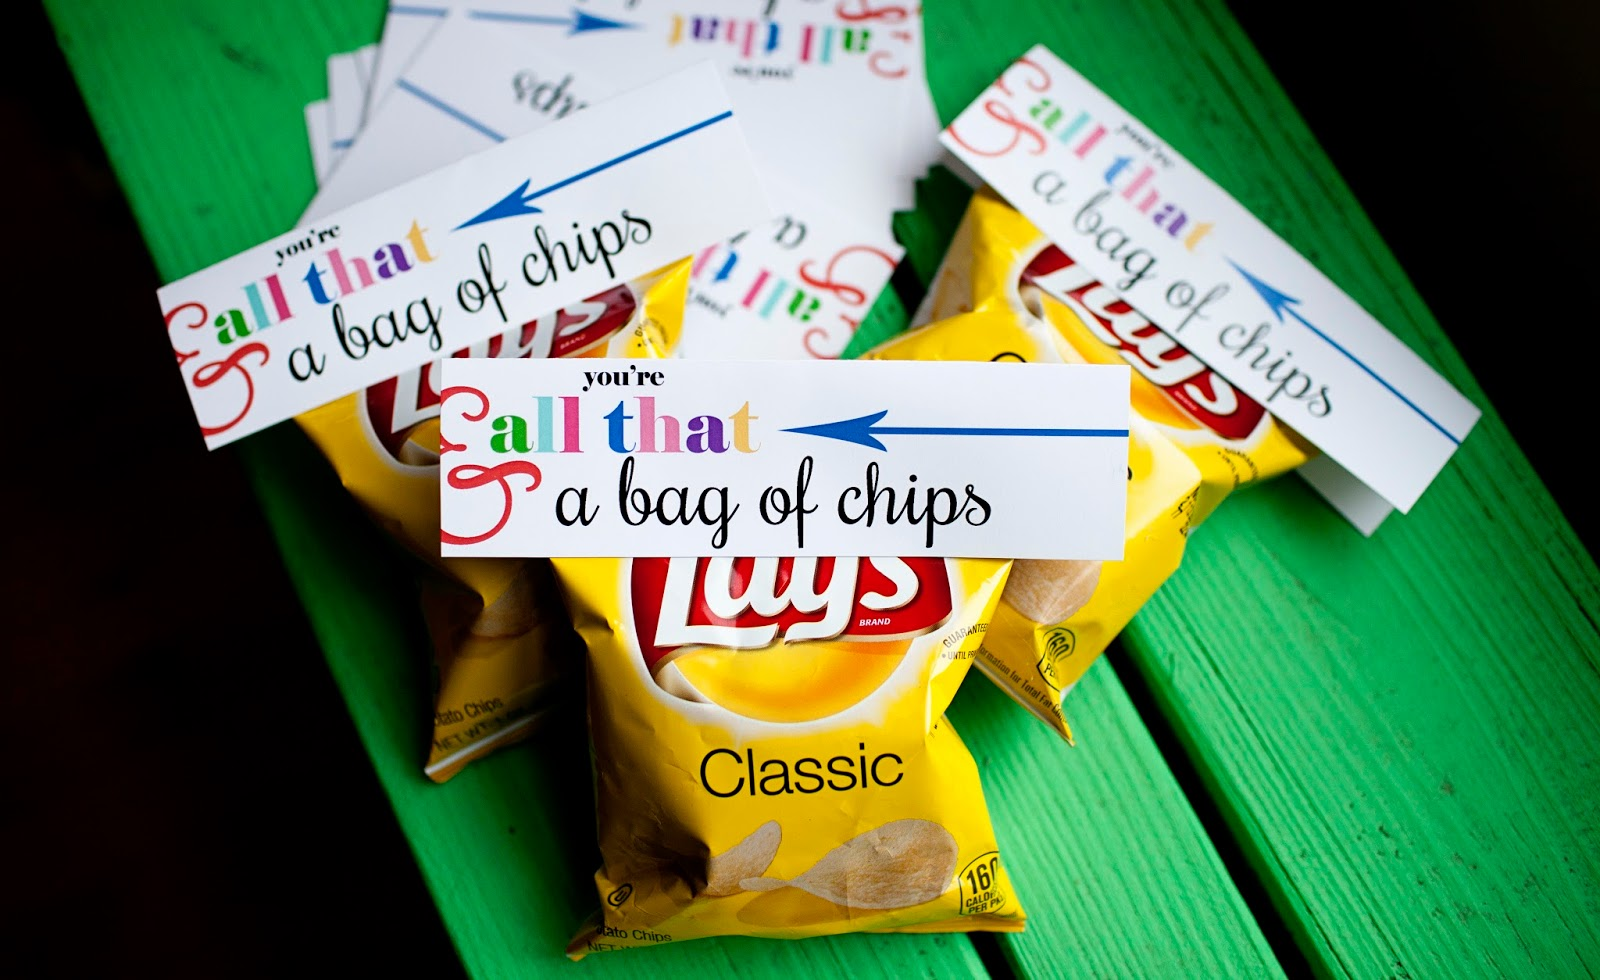 image about You're All That and a Bag of Chips Free Printable referred to as delighted gals are wonderful ladies: Youre All that . . .